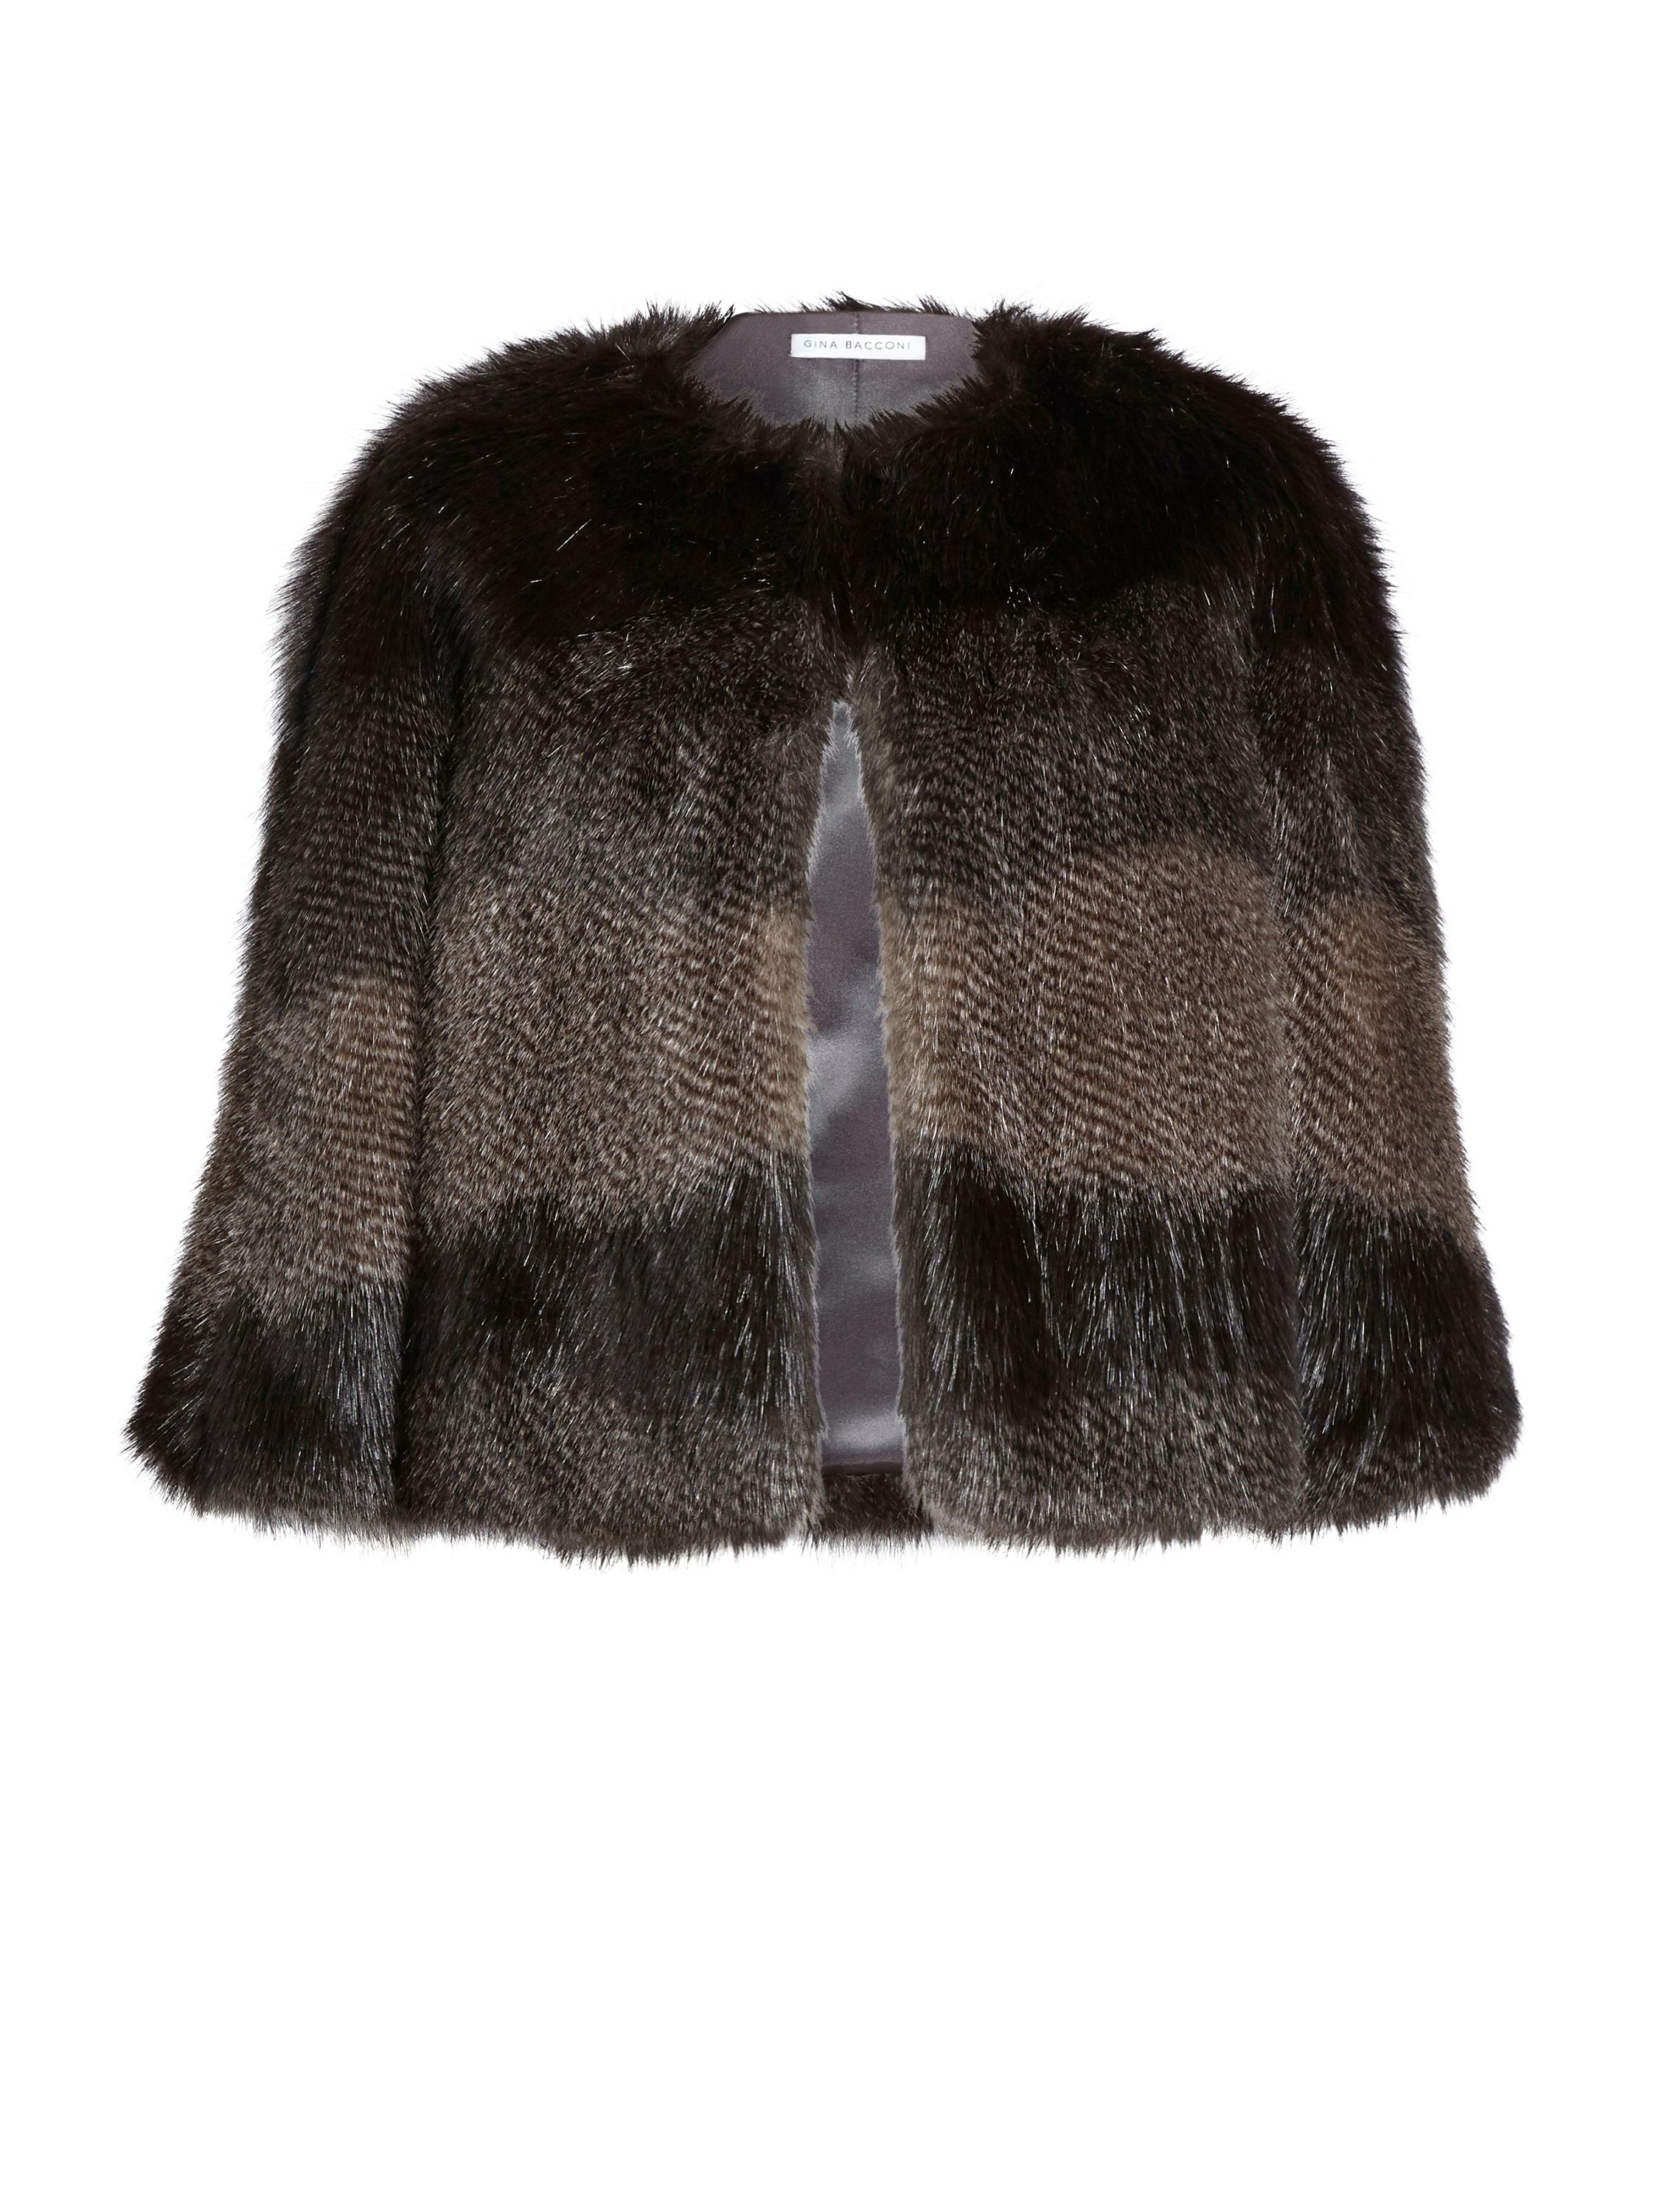 Gina Bacconi Subtle Stripe Faux Fur Cape, Multi-Coloured